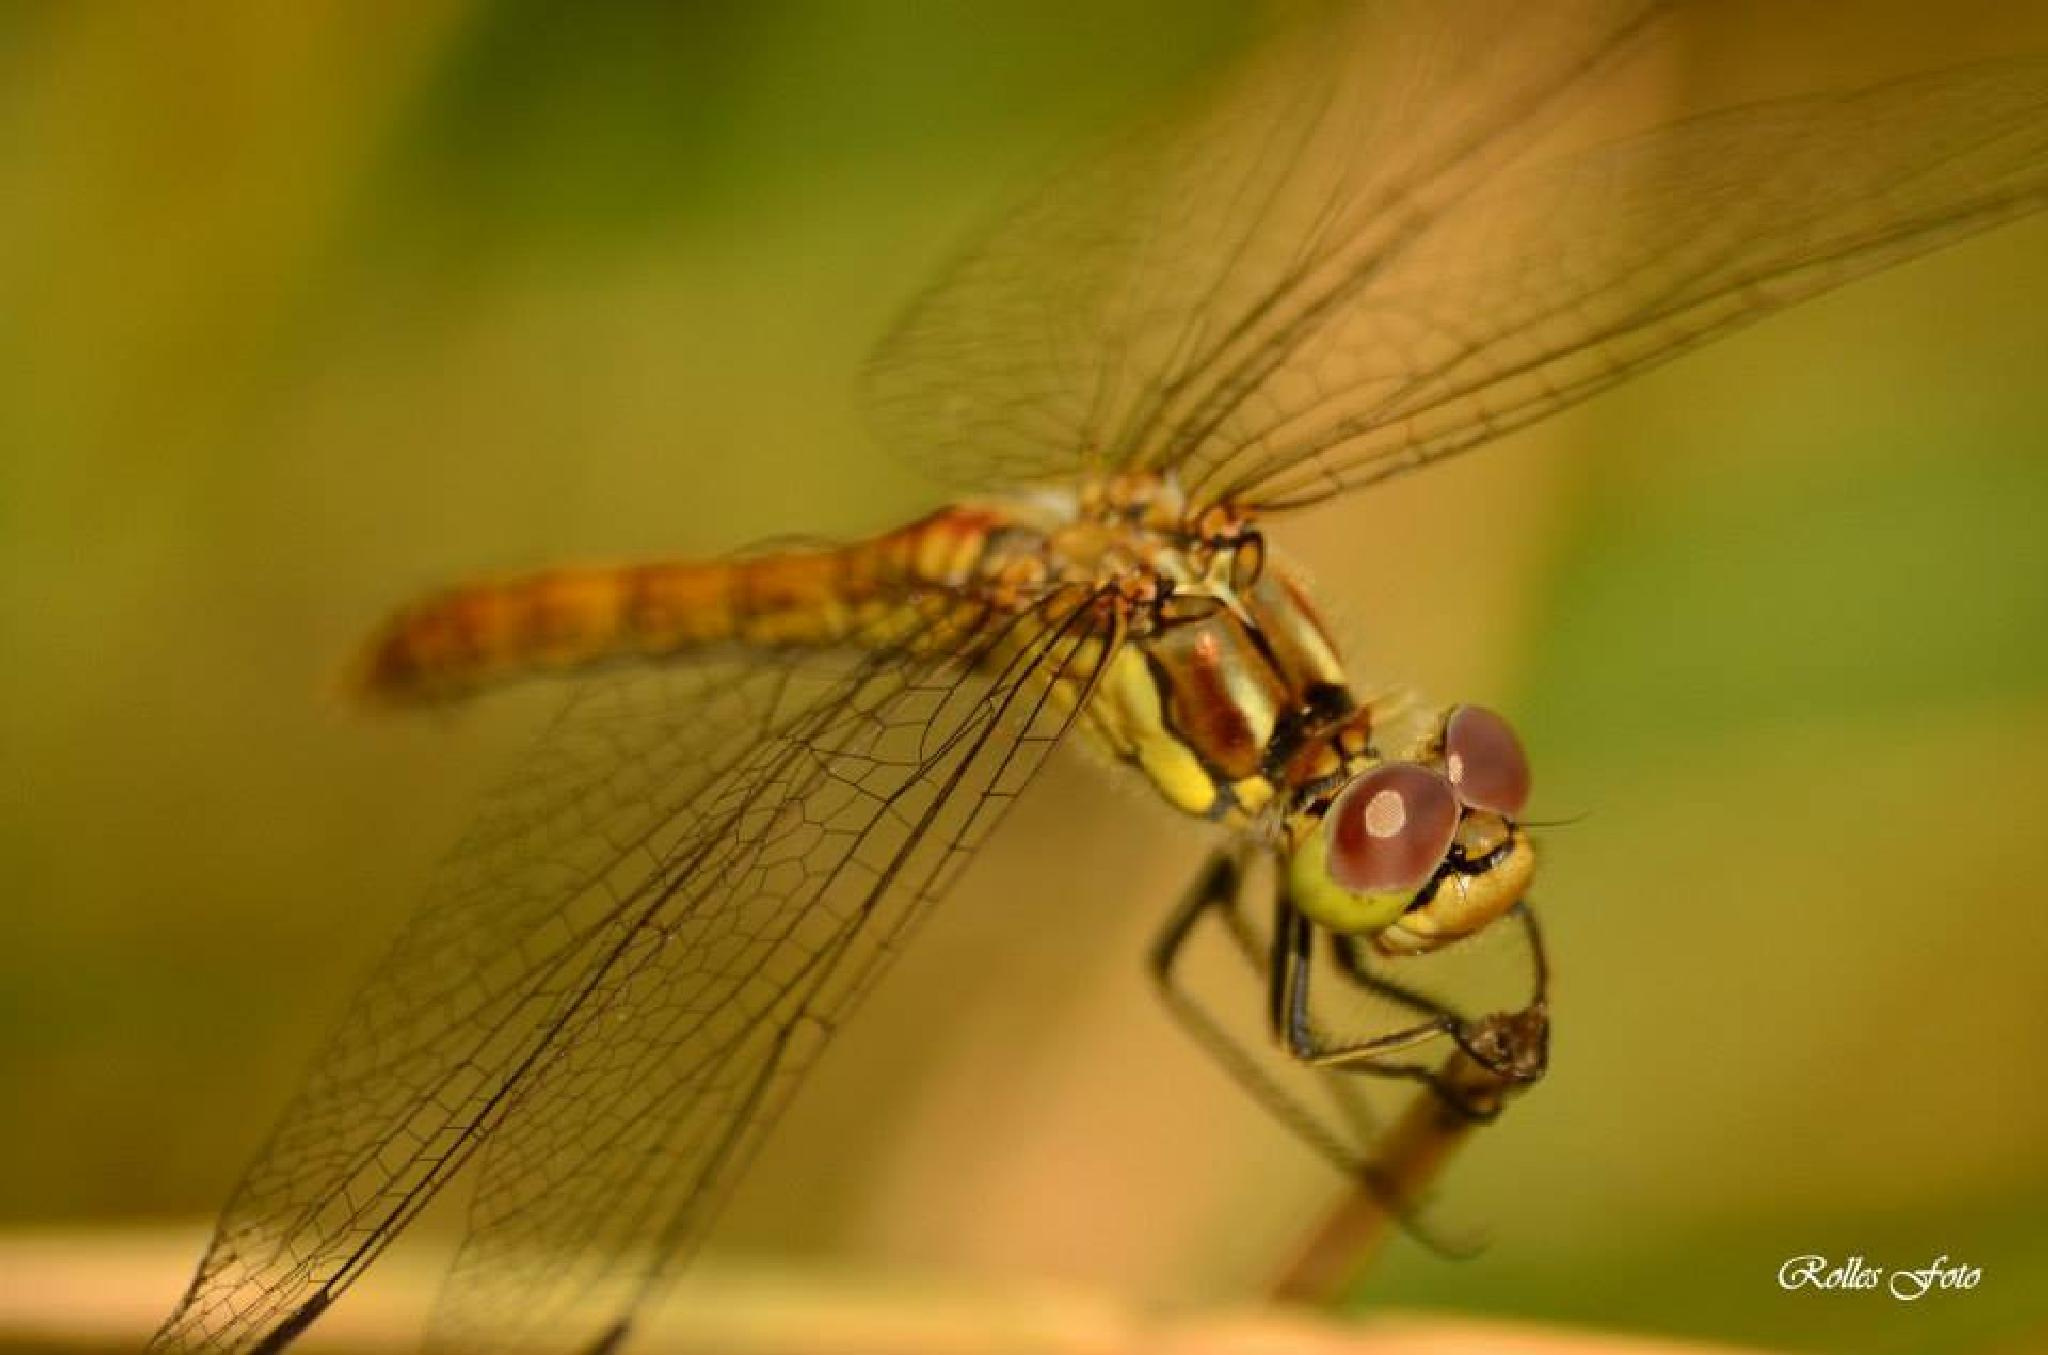 dragonfly by rollepersson